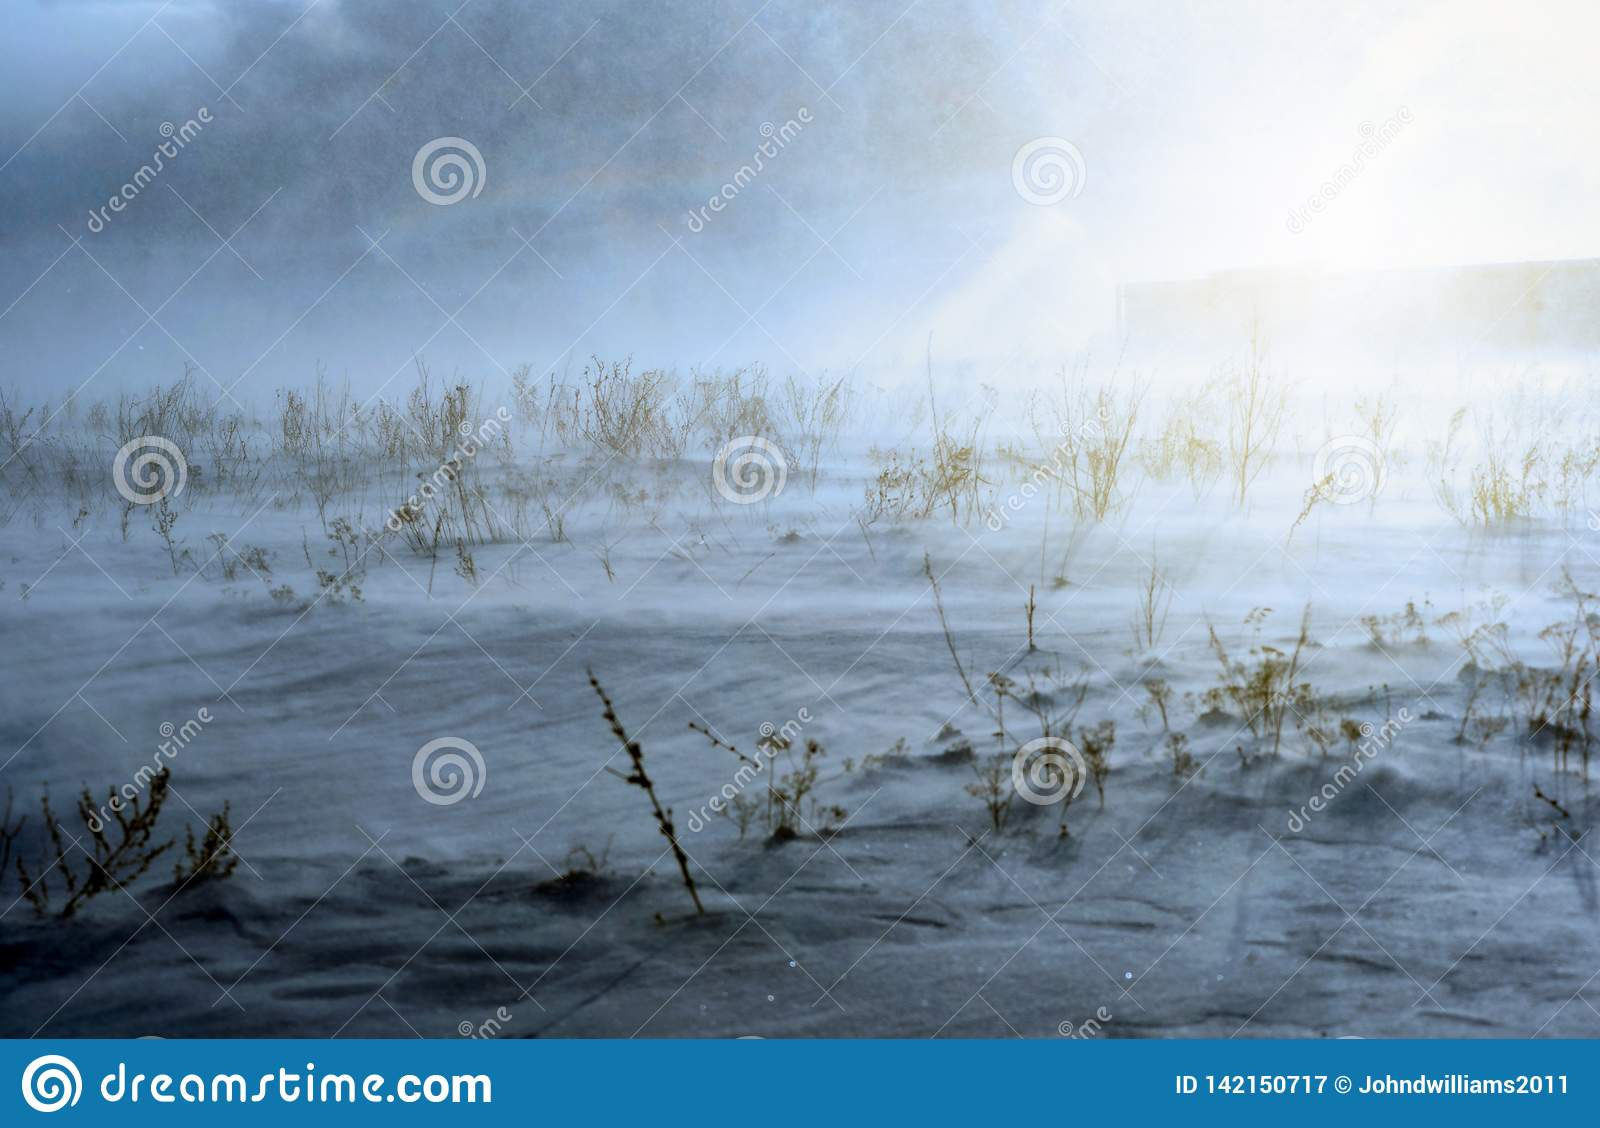 Winter Snow Blizzard With Sun And Plants Stock Image Image Of